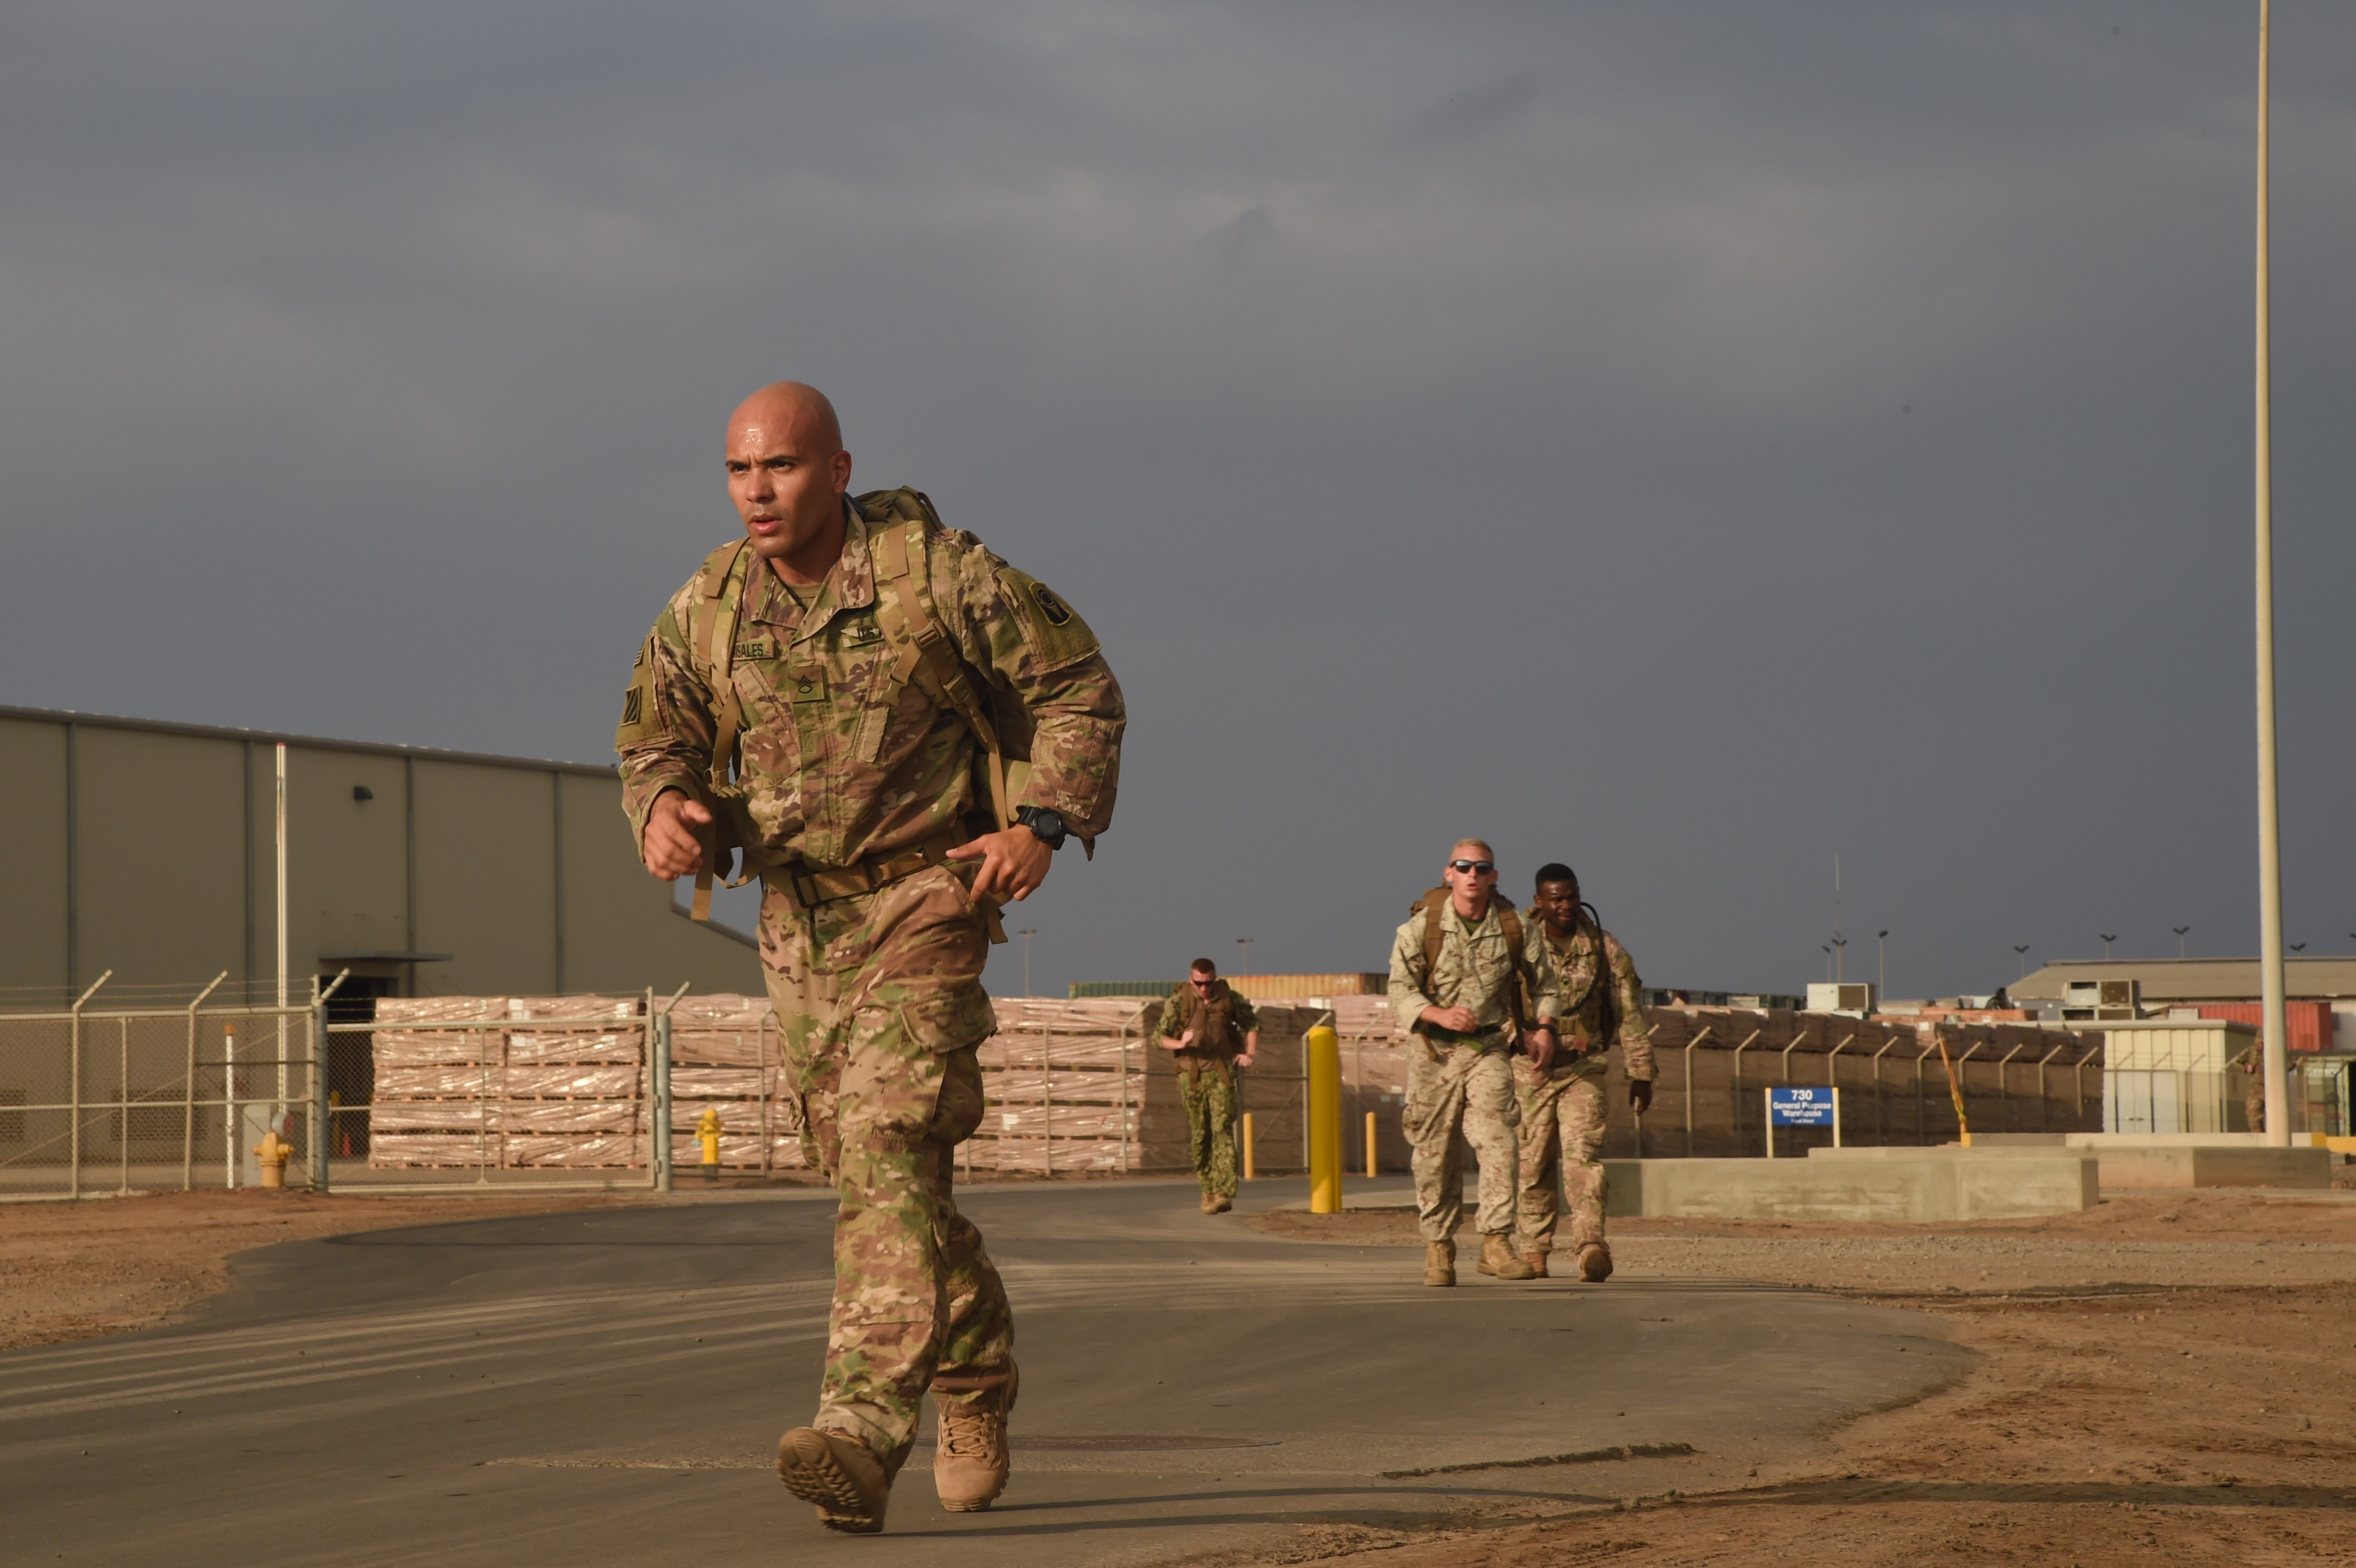 U.S. Army Staff Sgt. Juan Grisales, Combined Joint Task Force-Horn of Africa, endures a five-mile Army ruck march during the Joint Warrior Competition, Nov. 19, 2016, Camp Lemonnier, Djibouti. The ruck march began after participants had already completed a two-mile run, pull-ups, sit-ups, and push-ups. Members had to carry a minimum of 35 pounds during the march. (U.S. Air National Guard photo by Staff Sgt. Penny Snoozy)